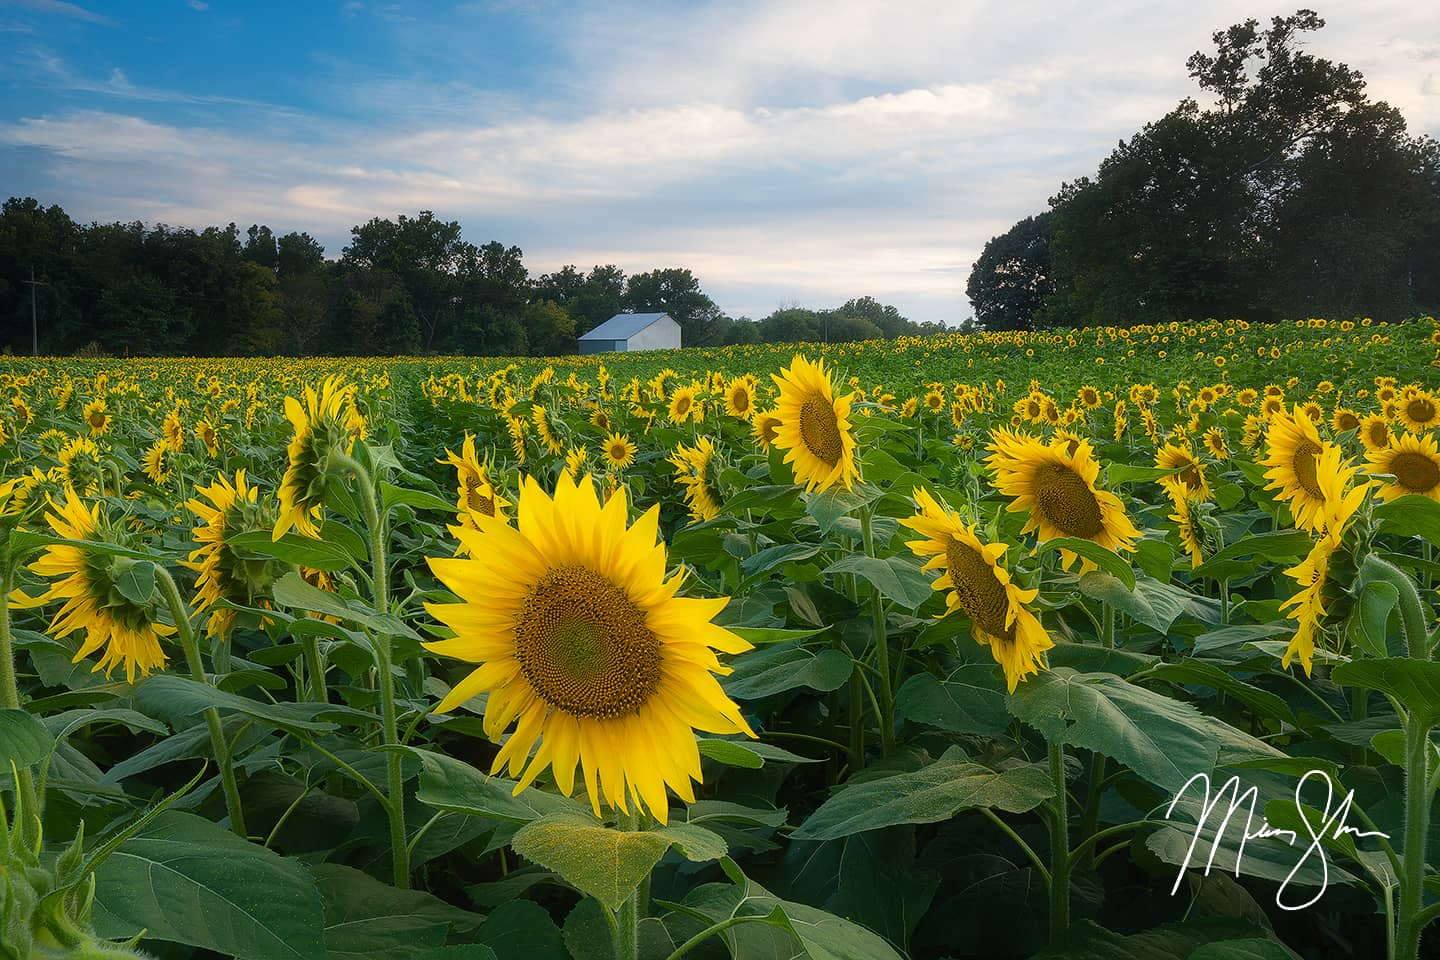 Grinter Farms Sunflowers